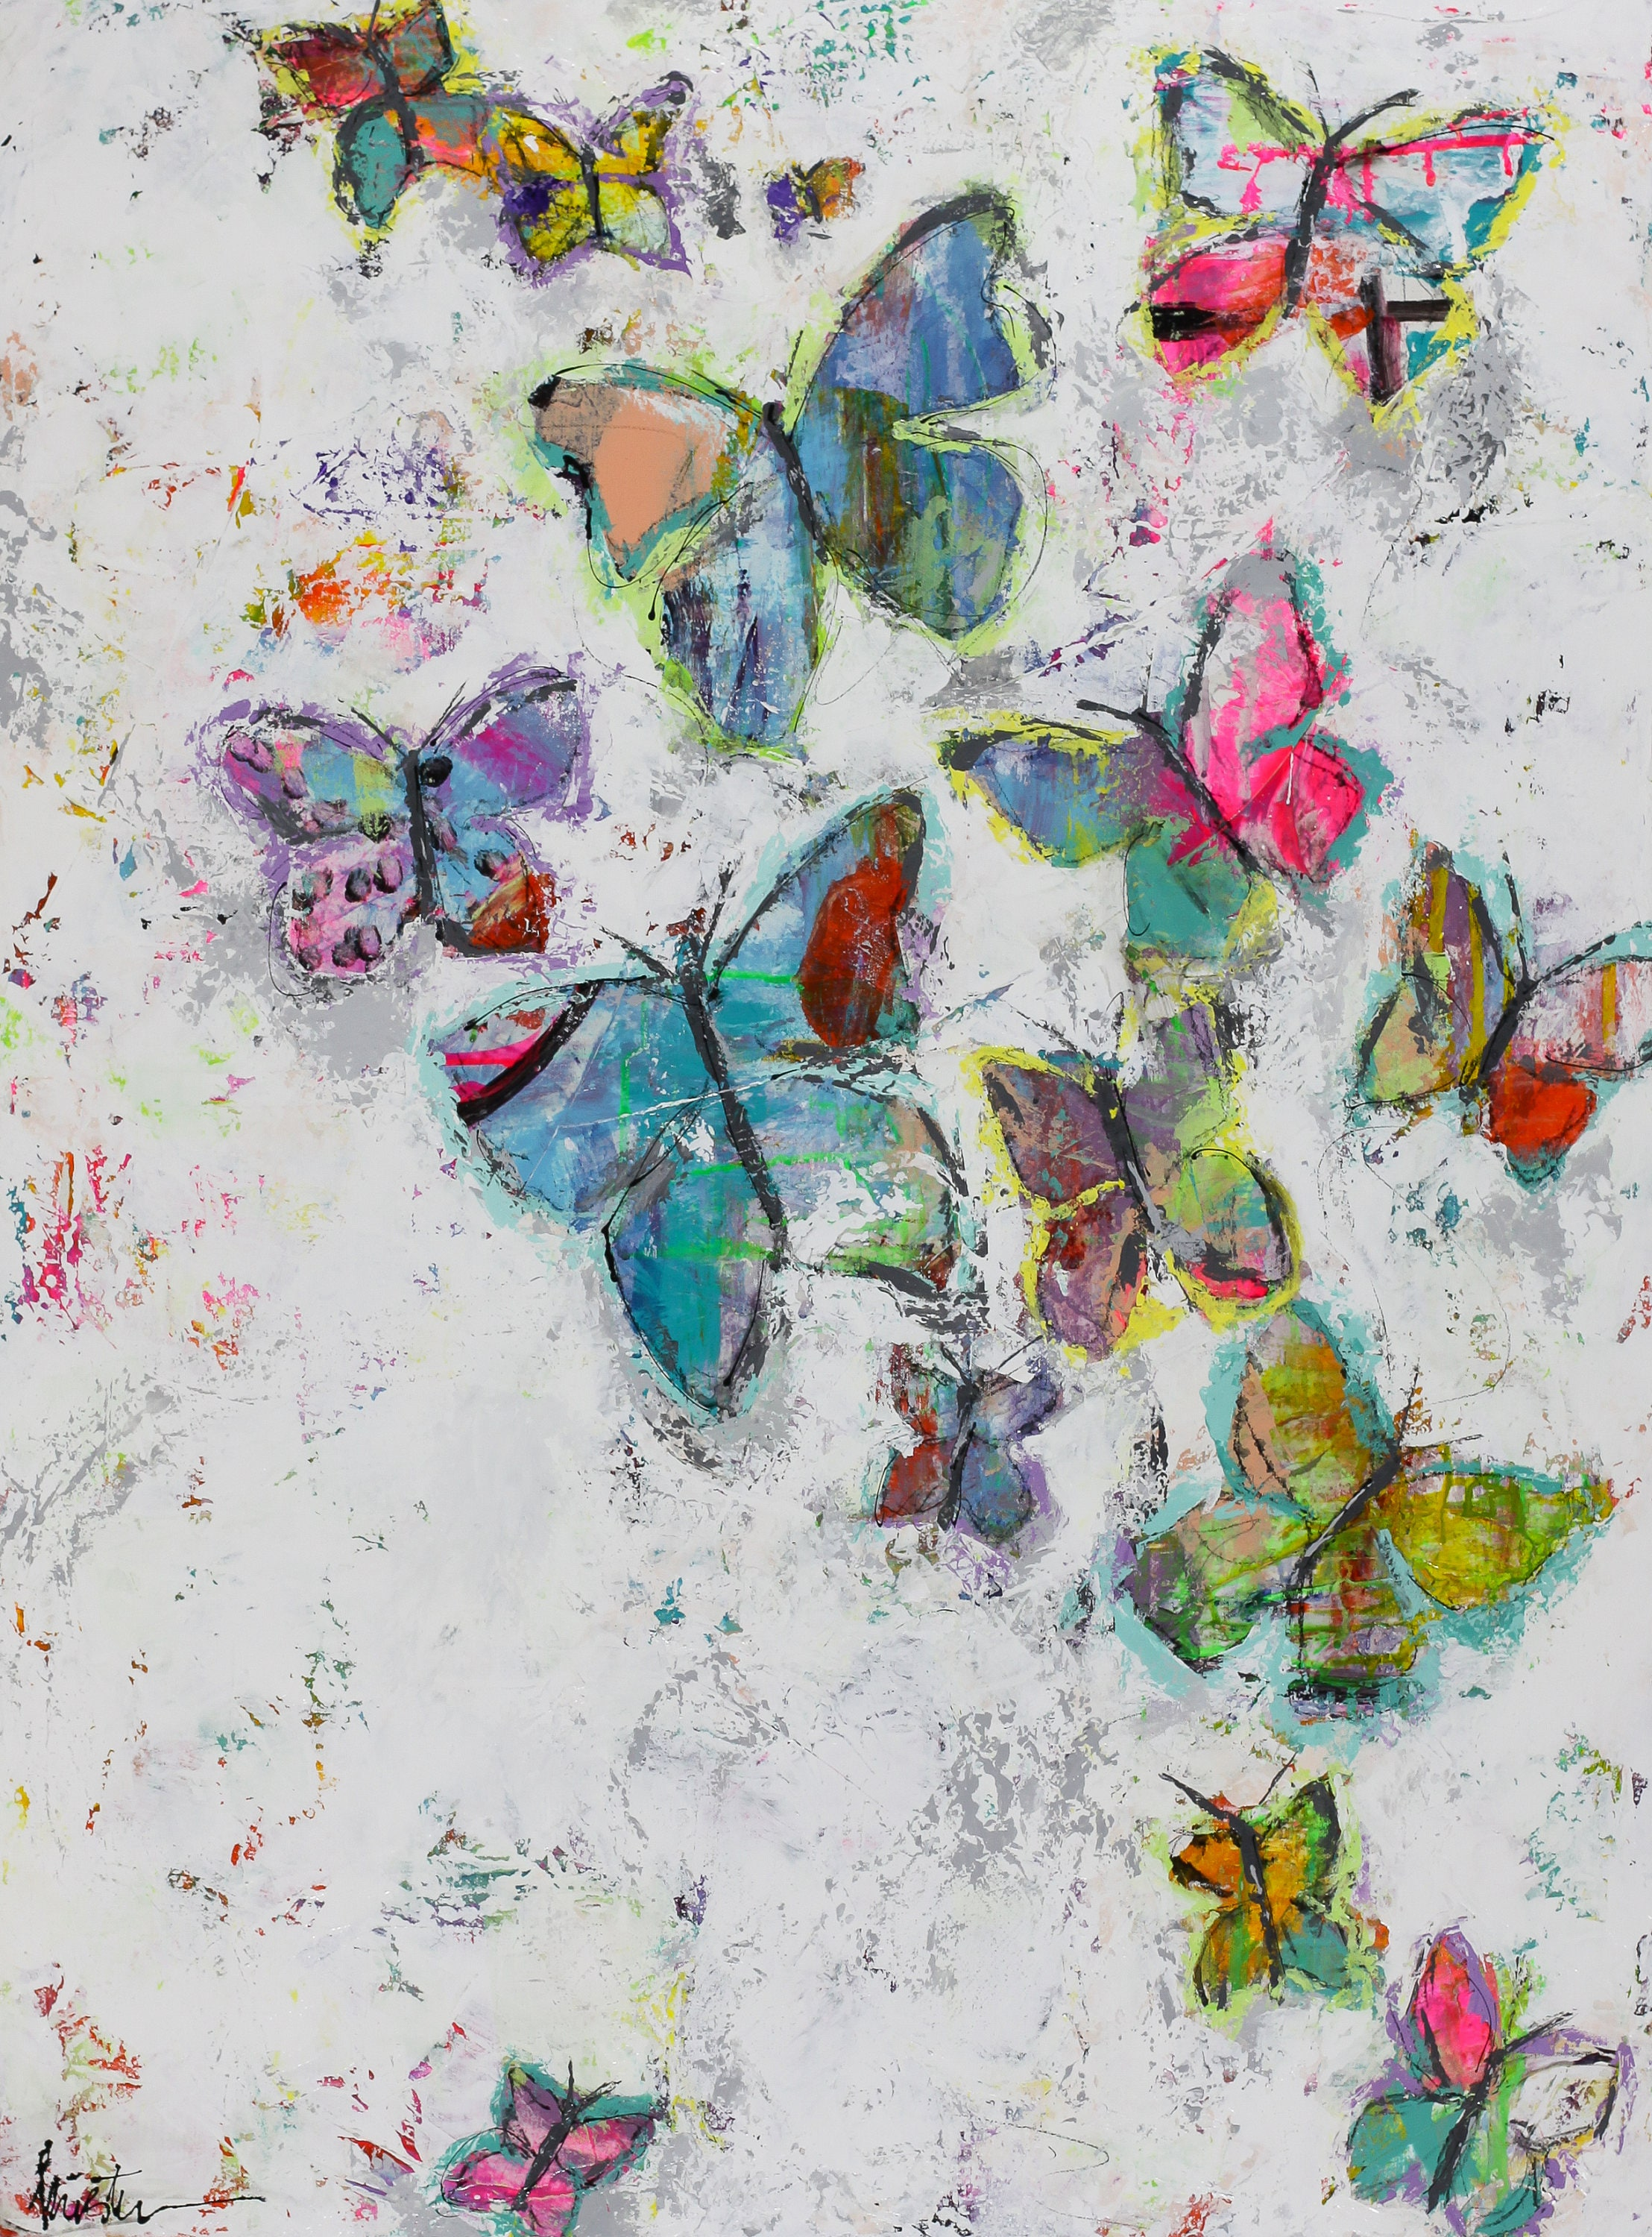 Butterfly canvas painting abstract art 3/4 thick   Etsy